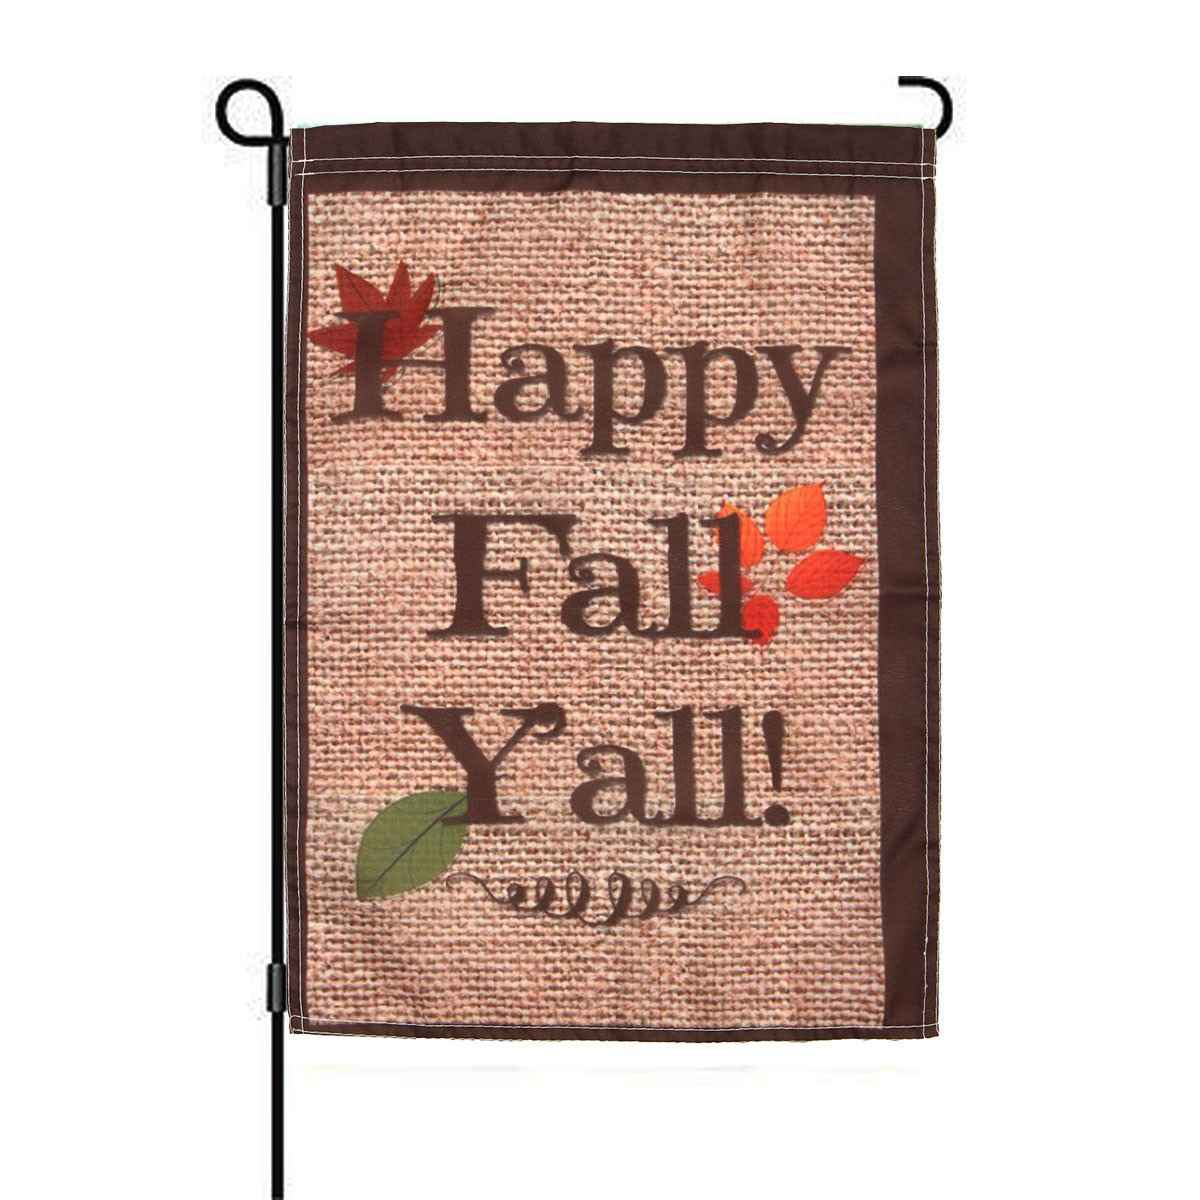 Meigar 18''x12.5'' Happy Fall Yall Autumn Polyester House Holiday Decorations Garden Flag Indoor Outdoor Home Tree Decor